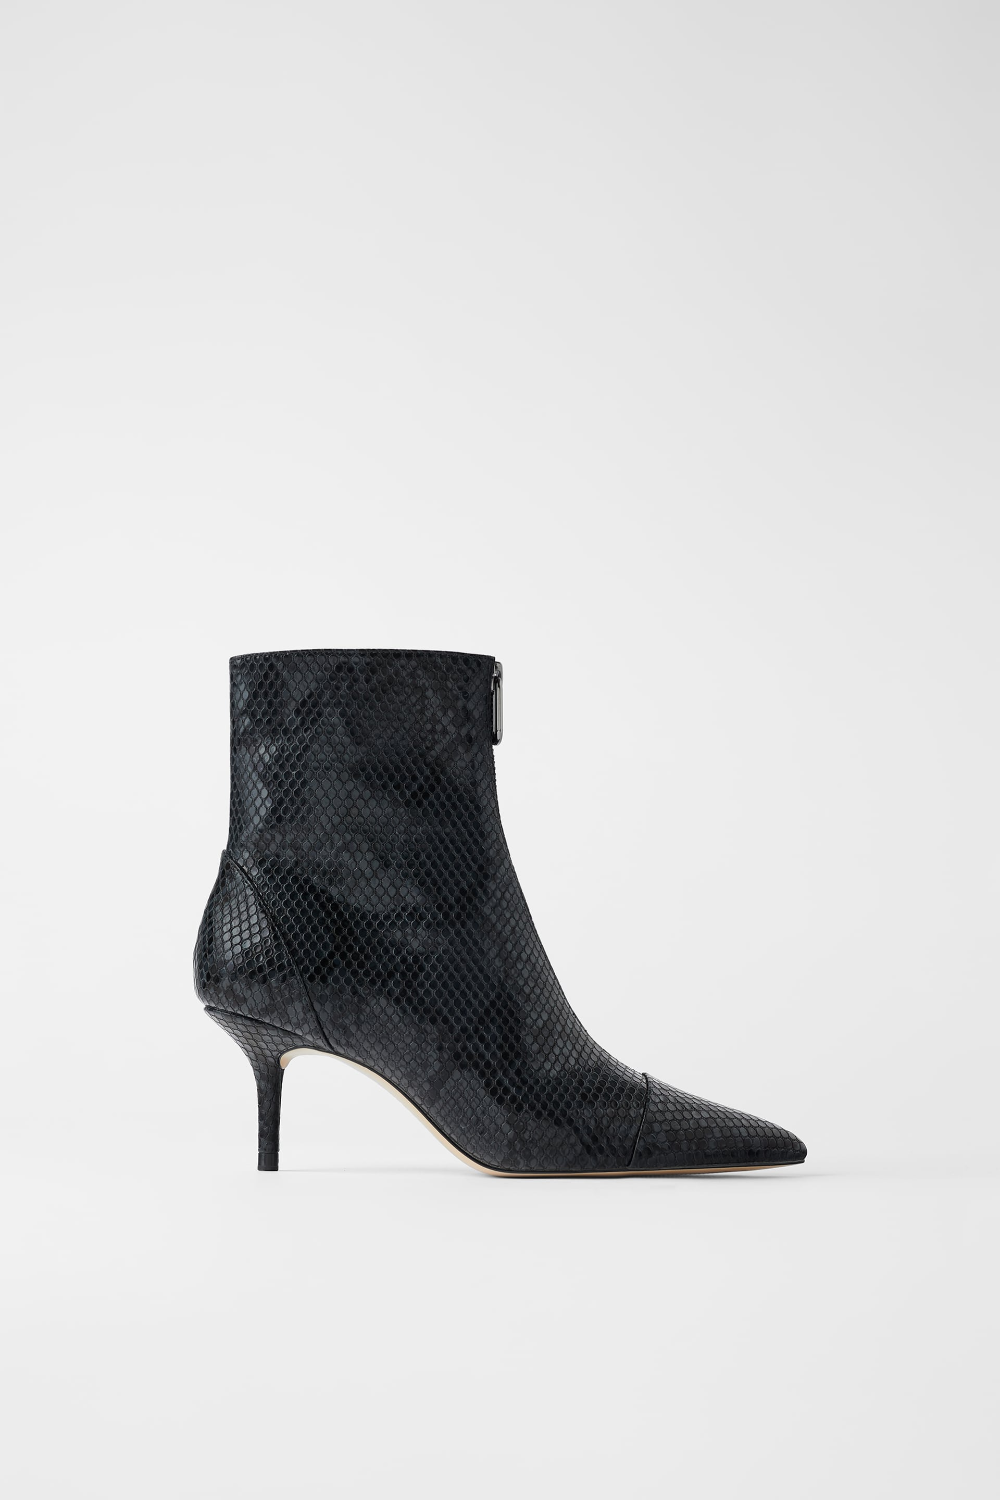 Zippered Heeled Ankle Boots High Heel Boots Ankle Heeled Ankle